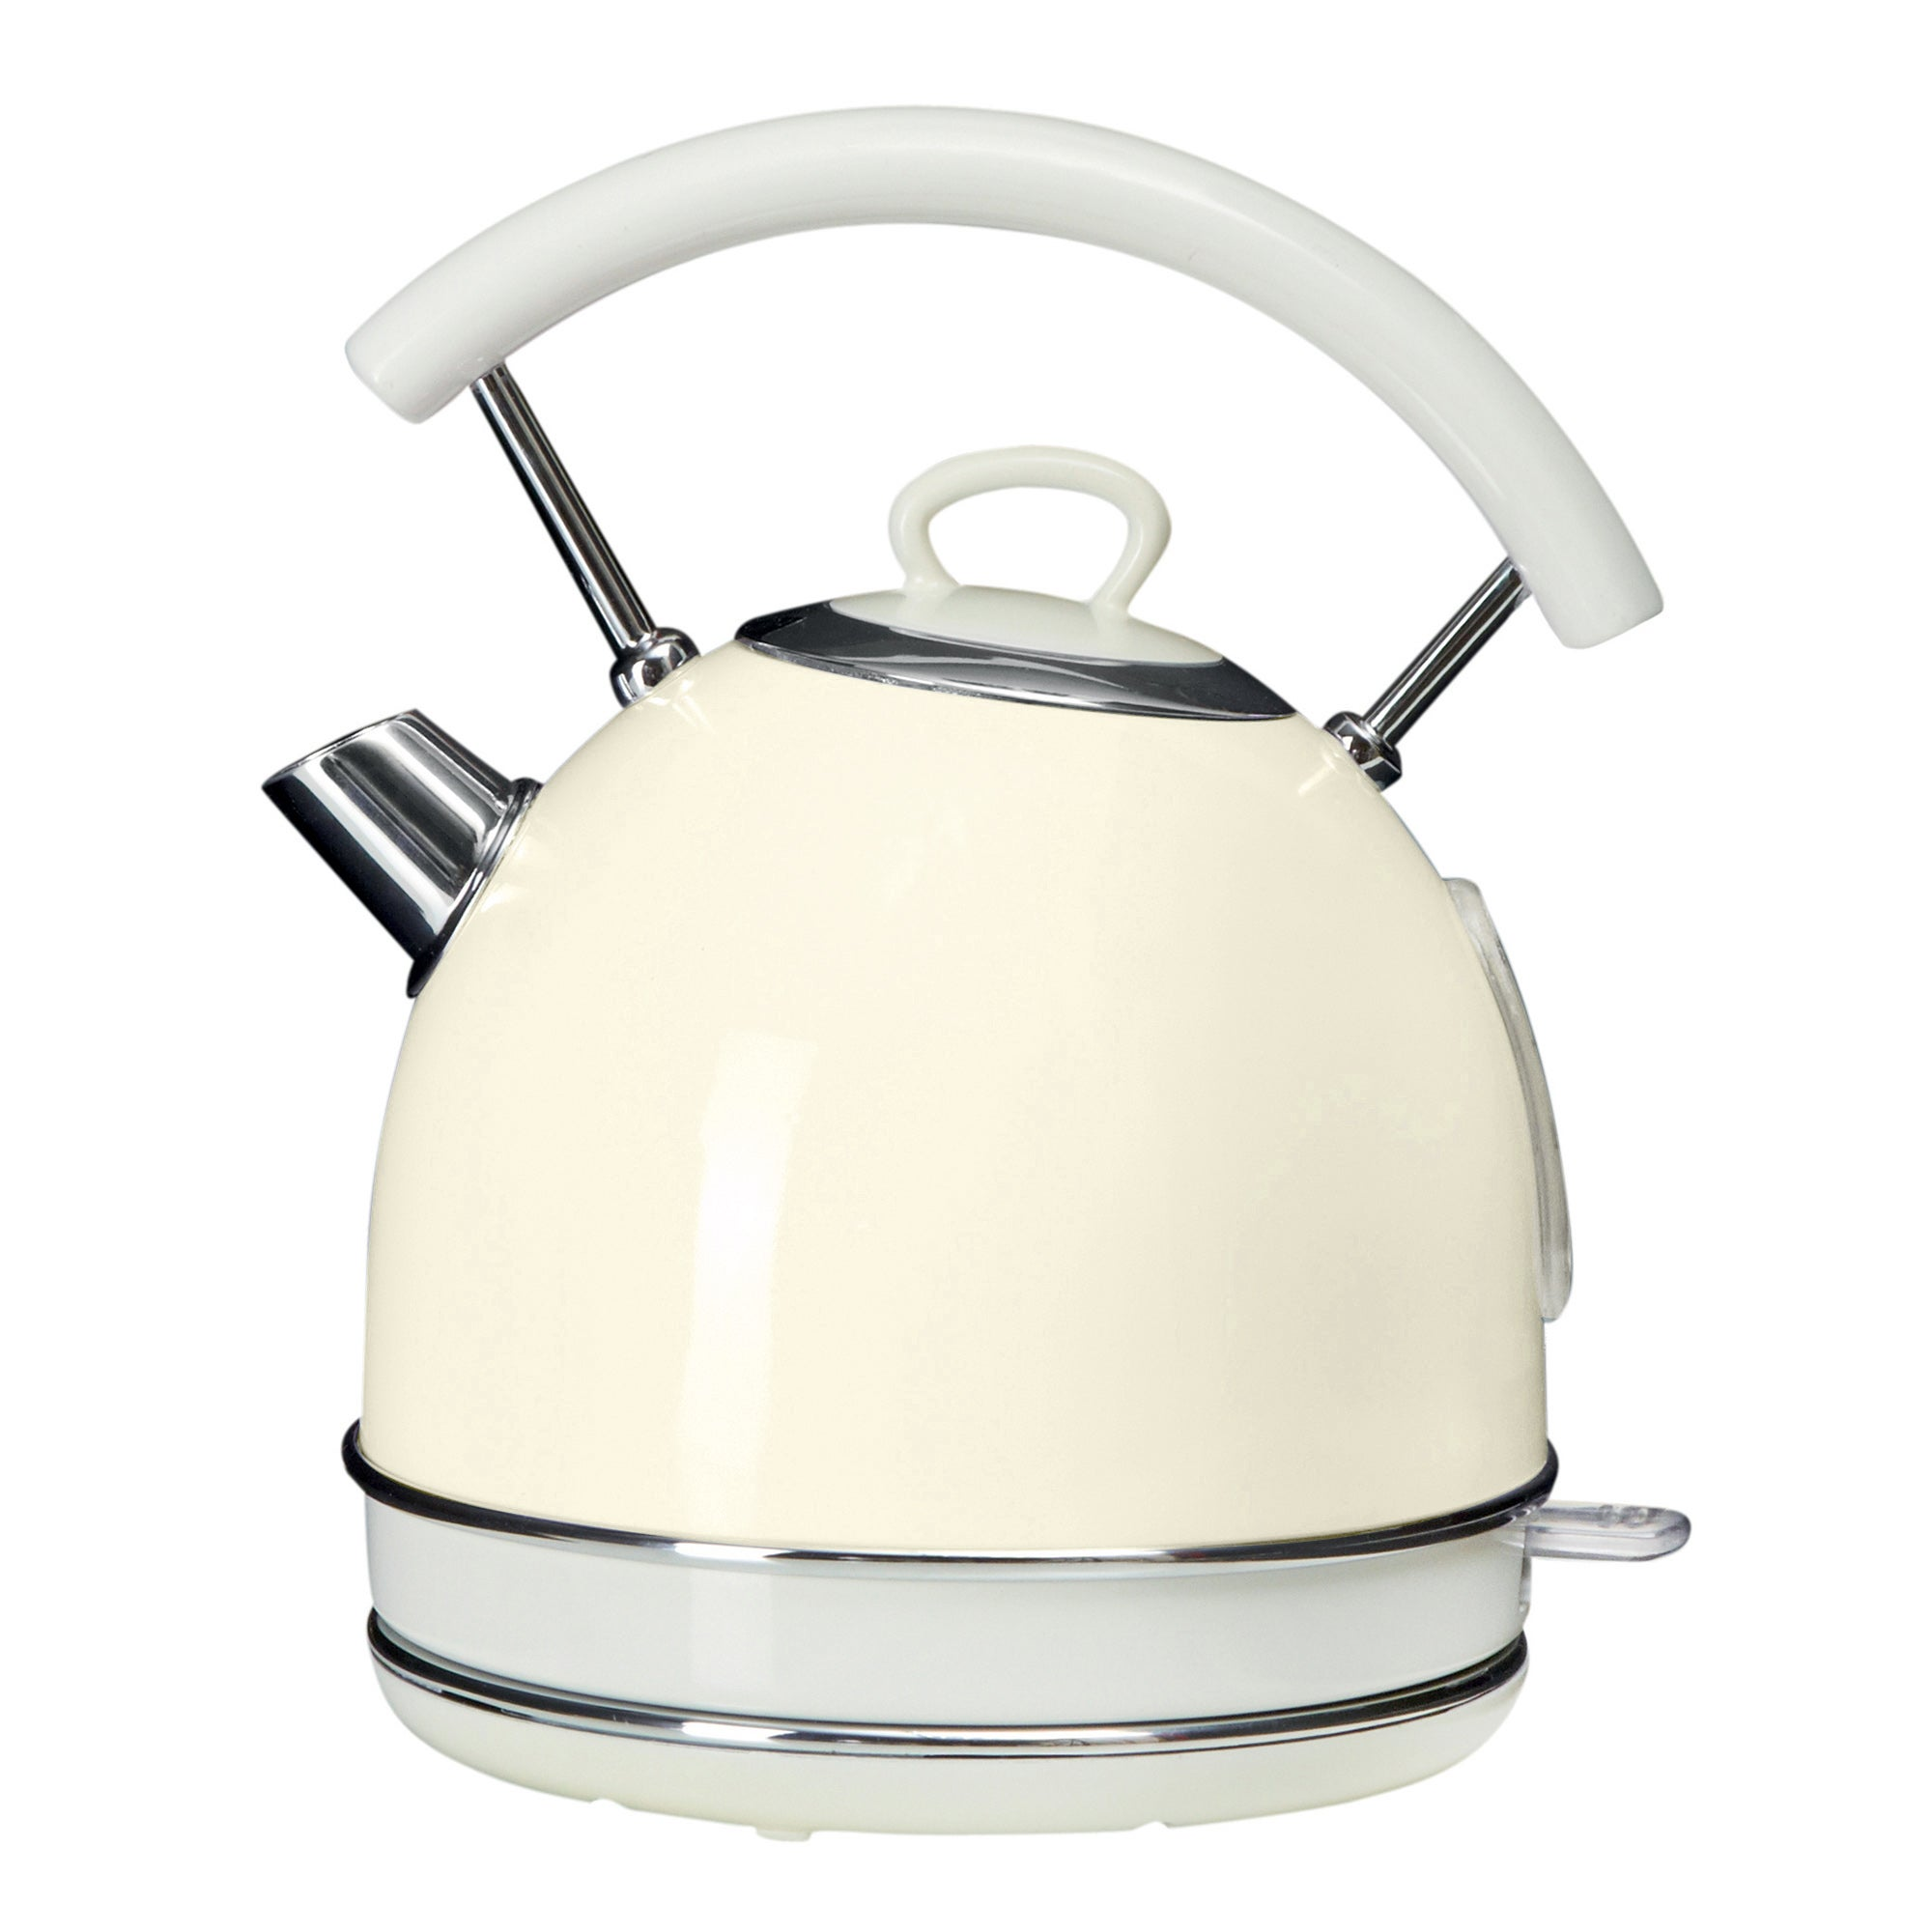 Candy Rose 1.7L Cream Kettle Cream